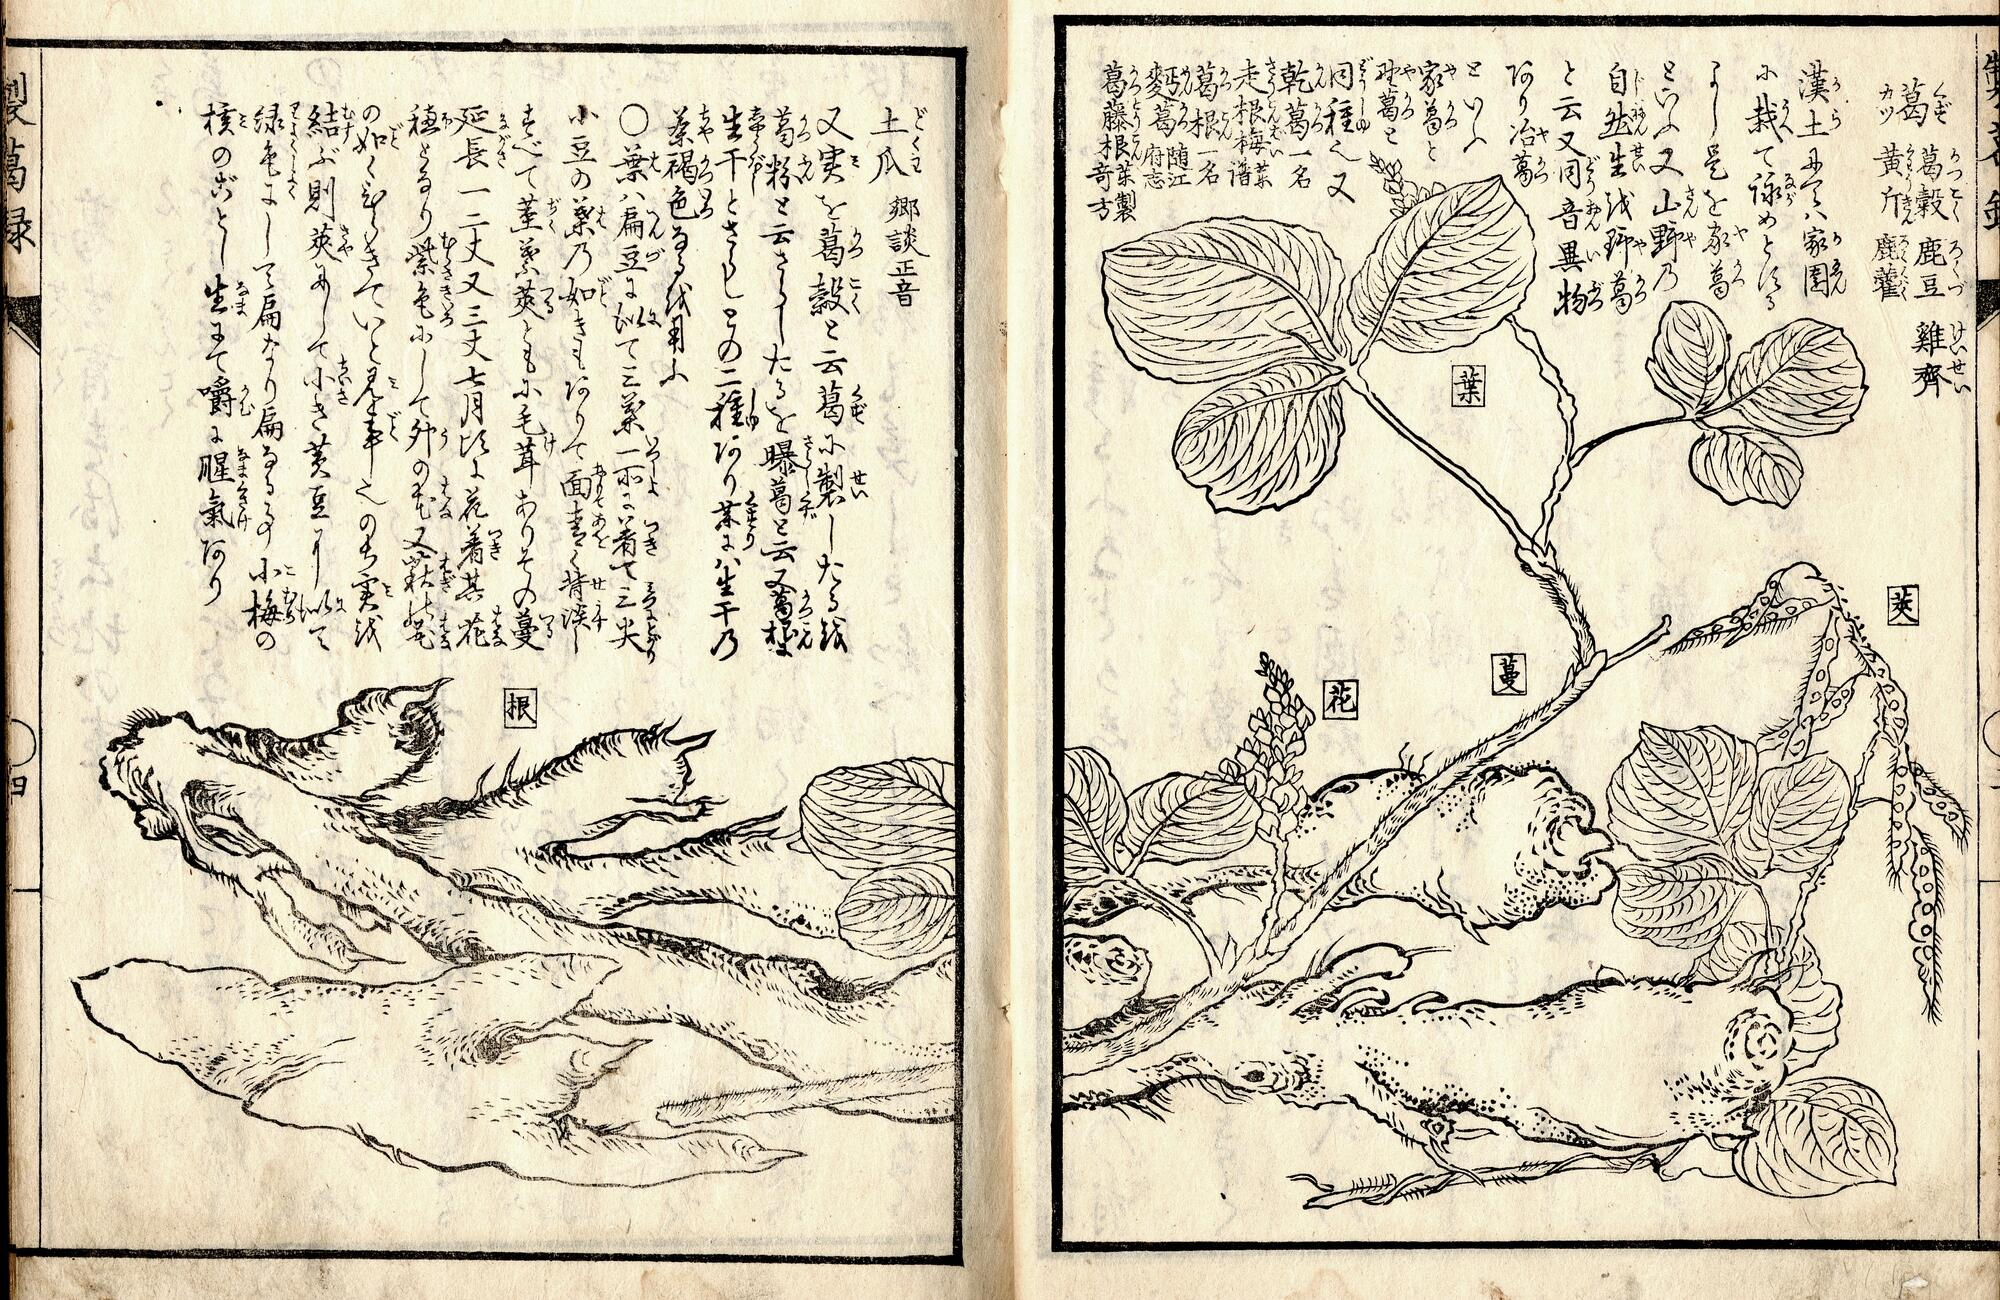 Woodblock image of kudzu plant and root system, with notes in Japanese.